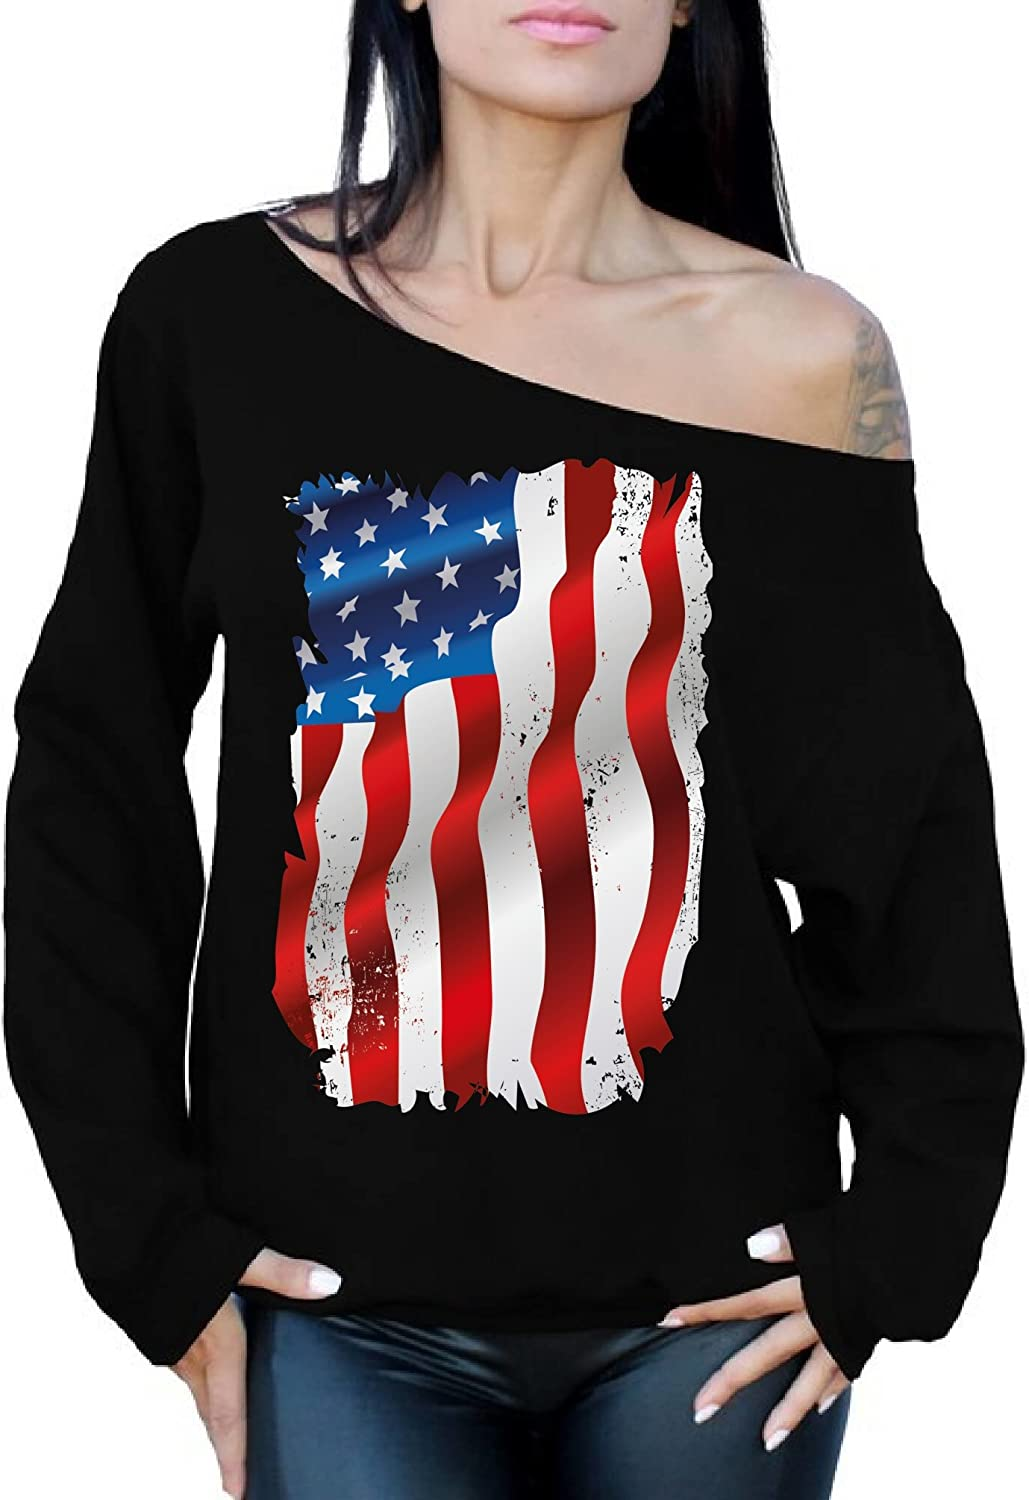 Awkward Styles Womens Love USA Flag Patriotic Off Shoulder Tops Sweatshirt Stars and Stripes 4th of July